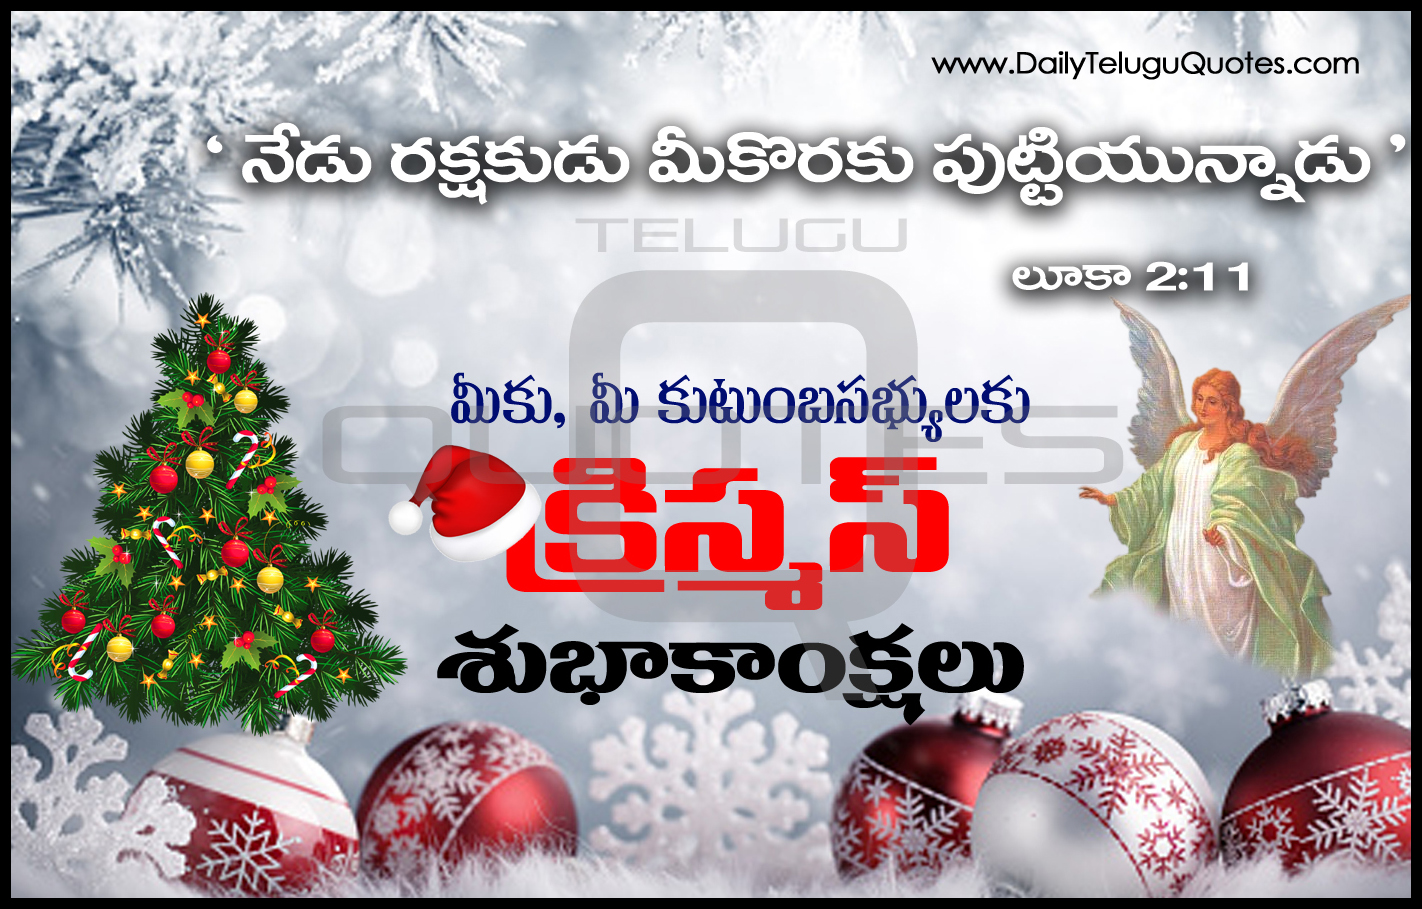 Happy Christmas Greetings In Telugu Quotes And Wallpapers